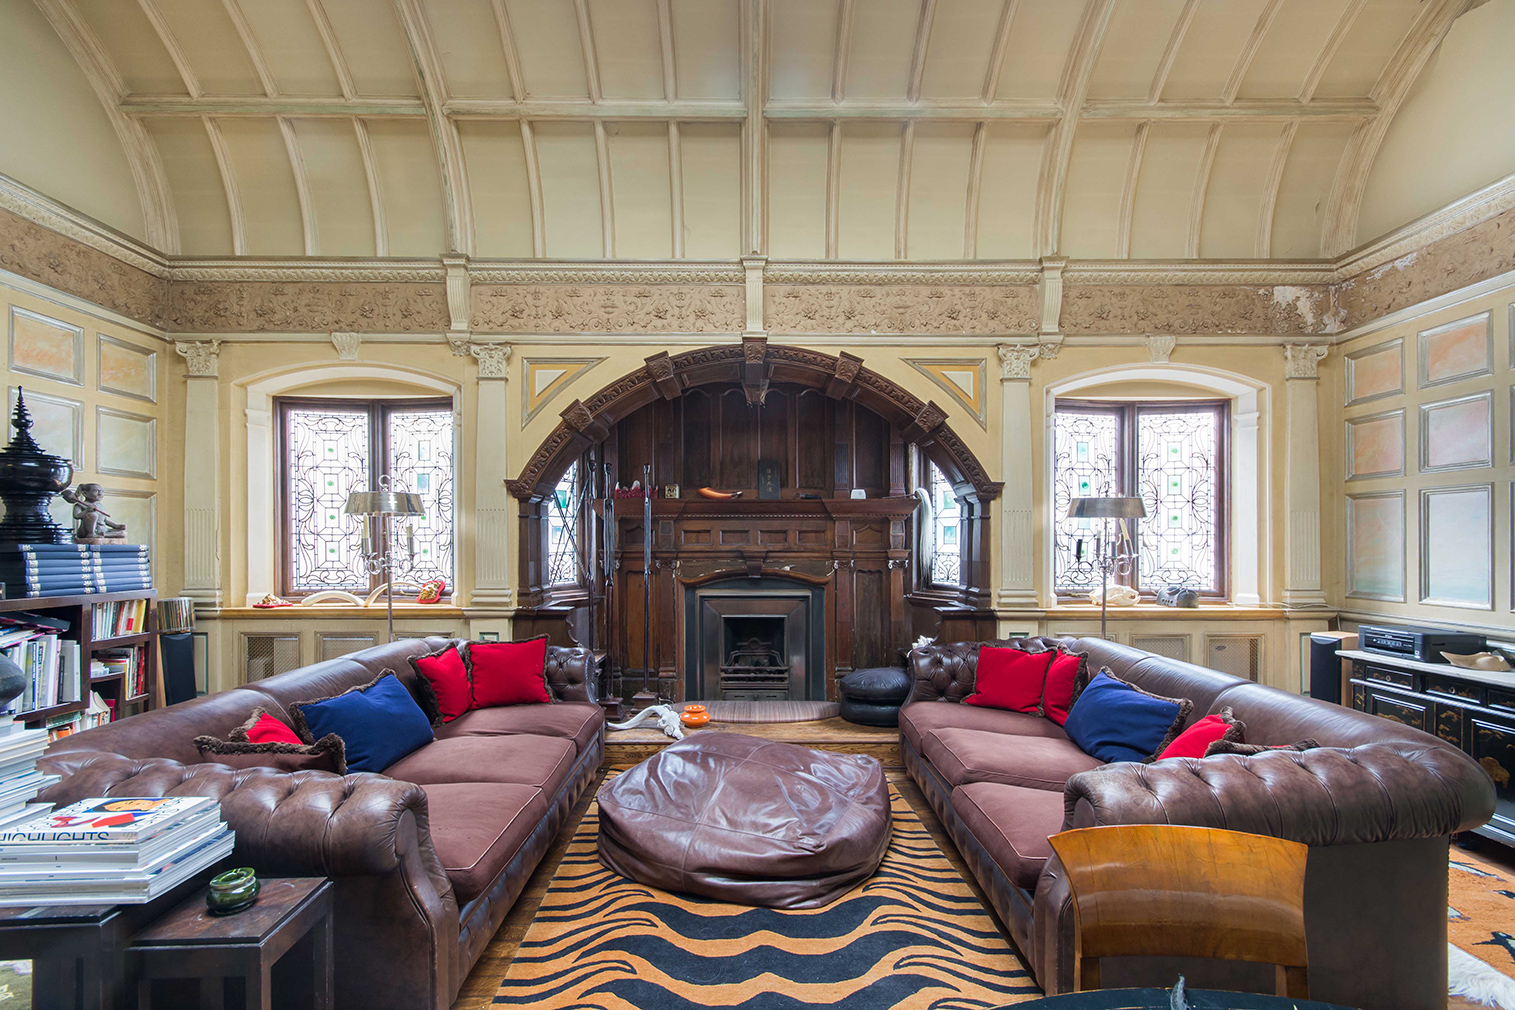 William morris apartment the most unusual london homes for sale right now